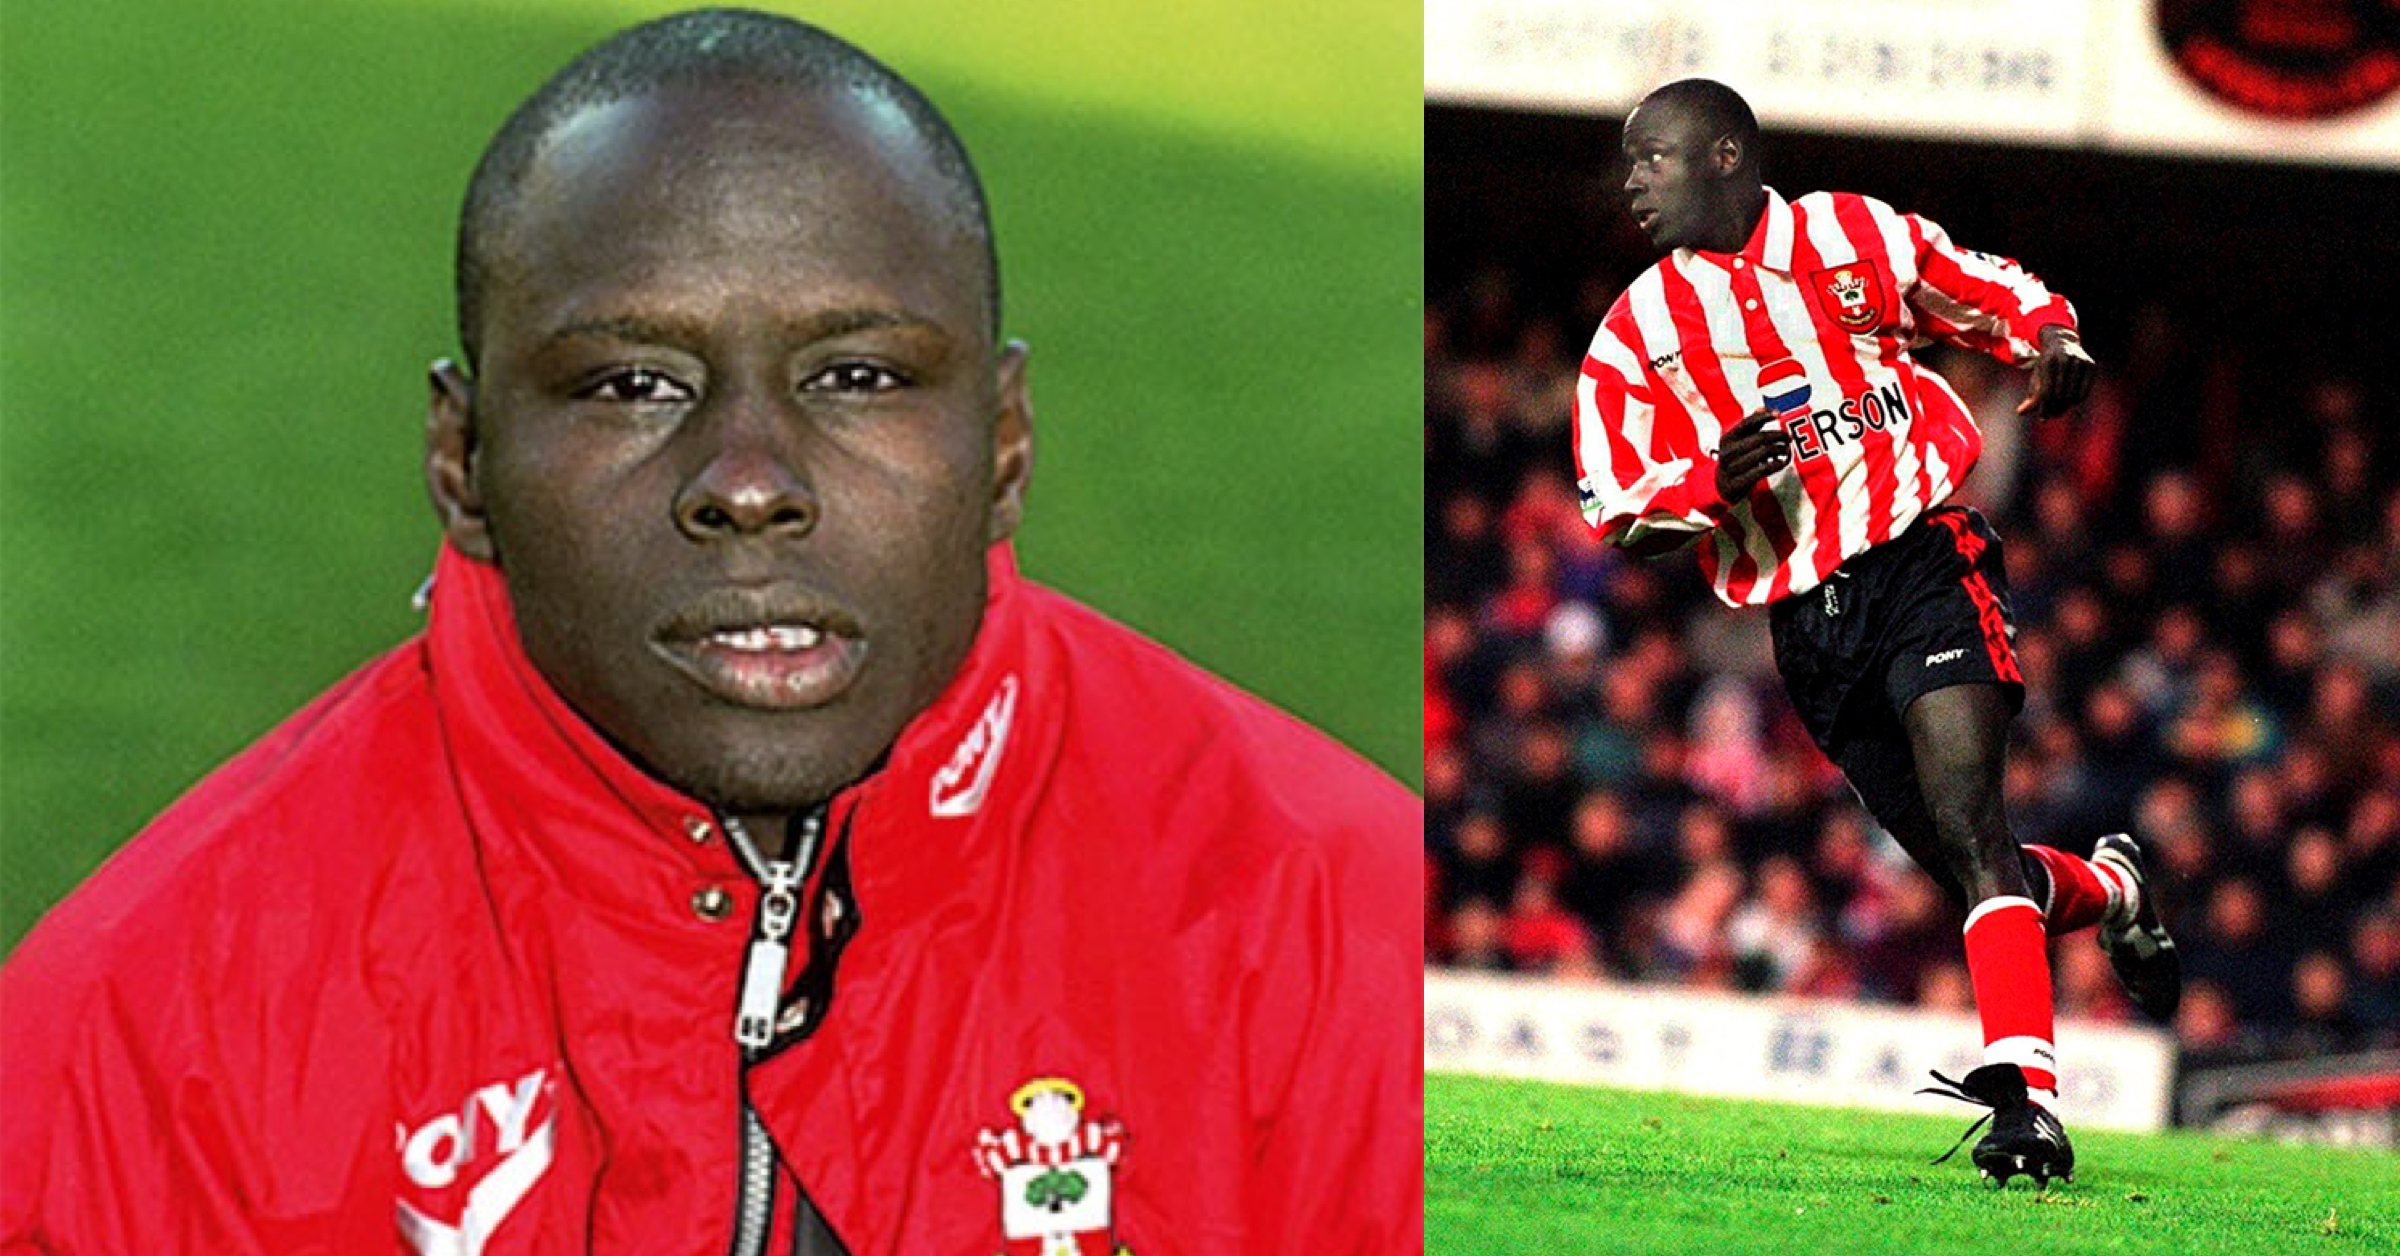 WATCH: Ali Dia – The Sunday League Player Who Bluffed His Way Into The Premier League